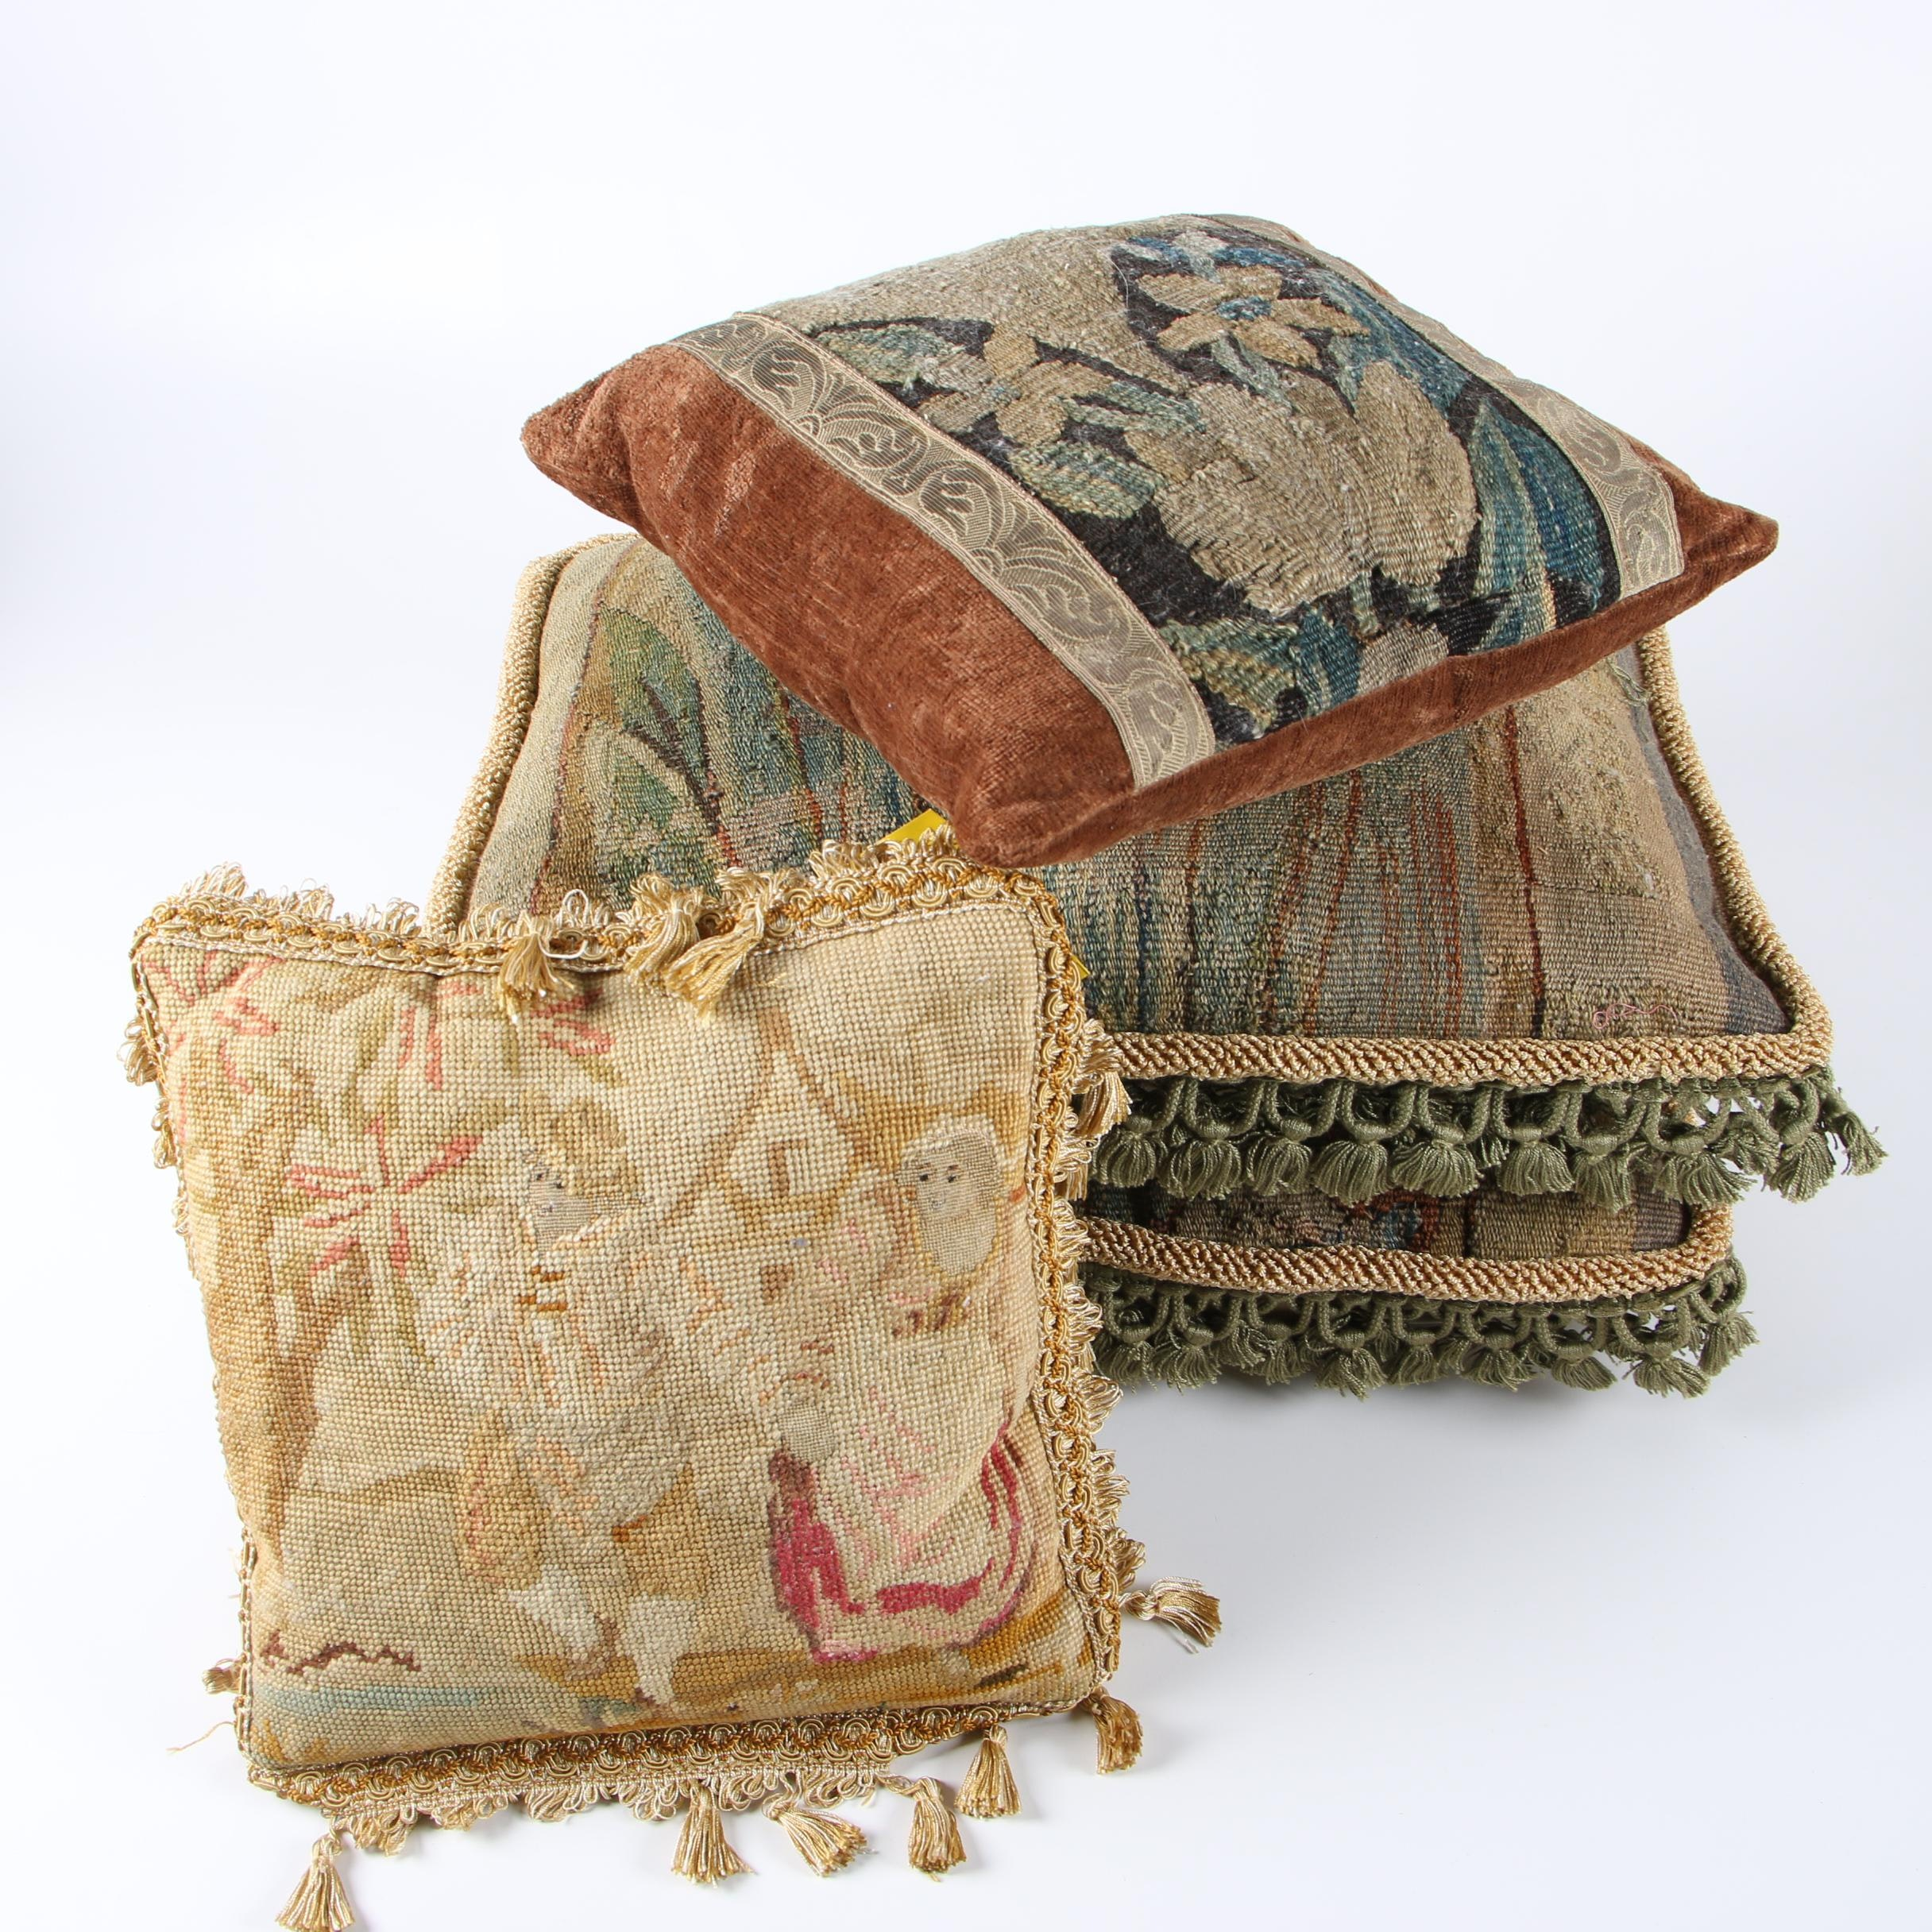 Tapestry Style and Needlepoint Pillows